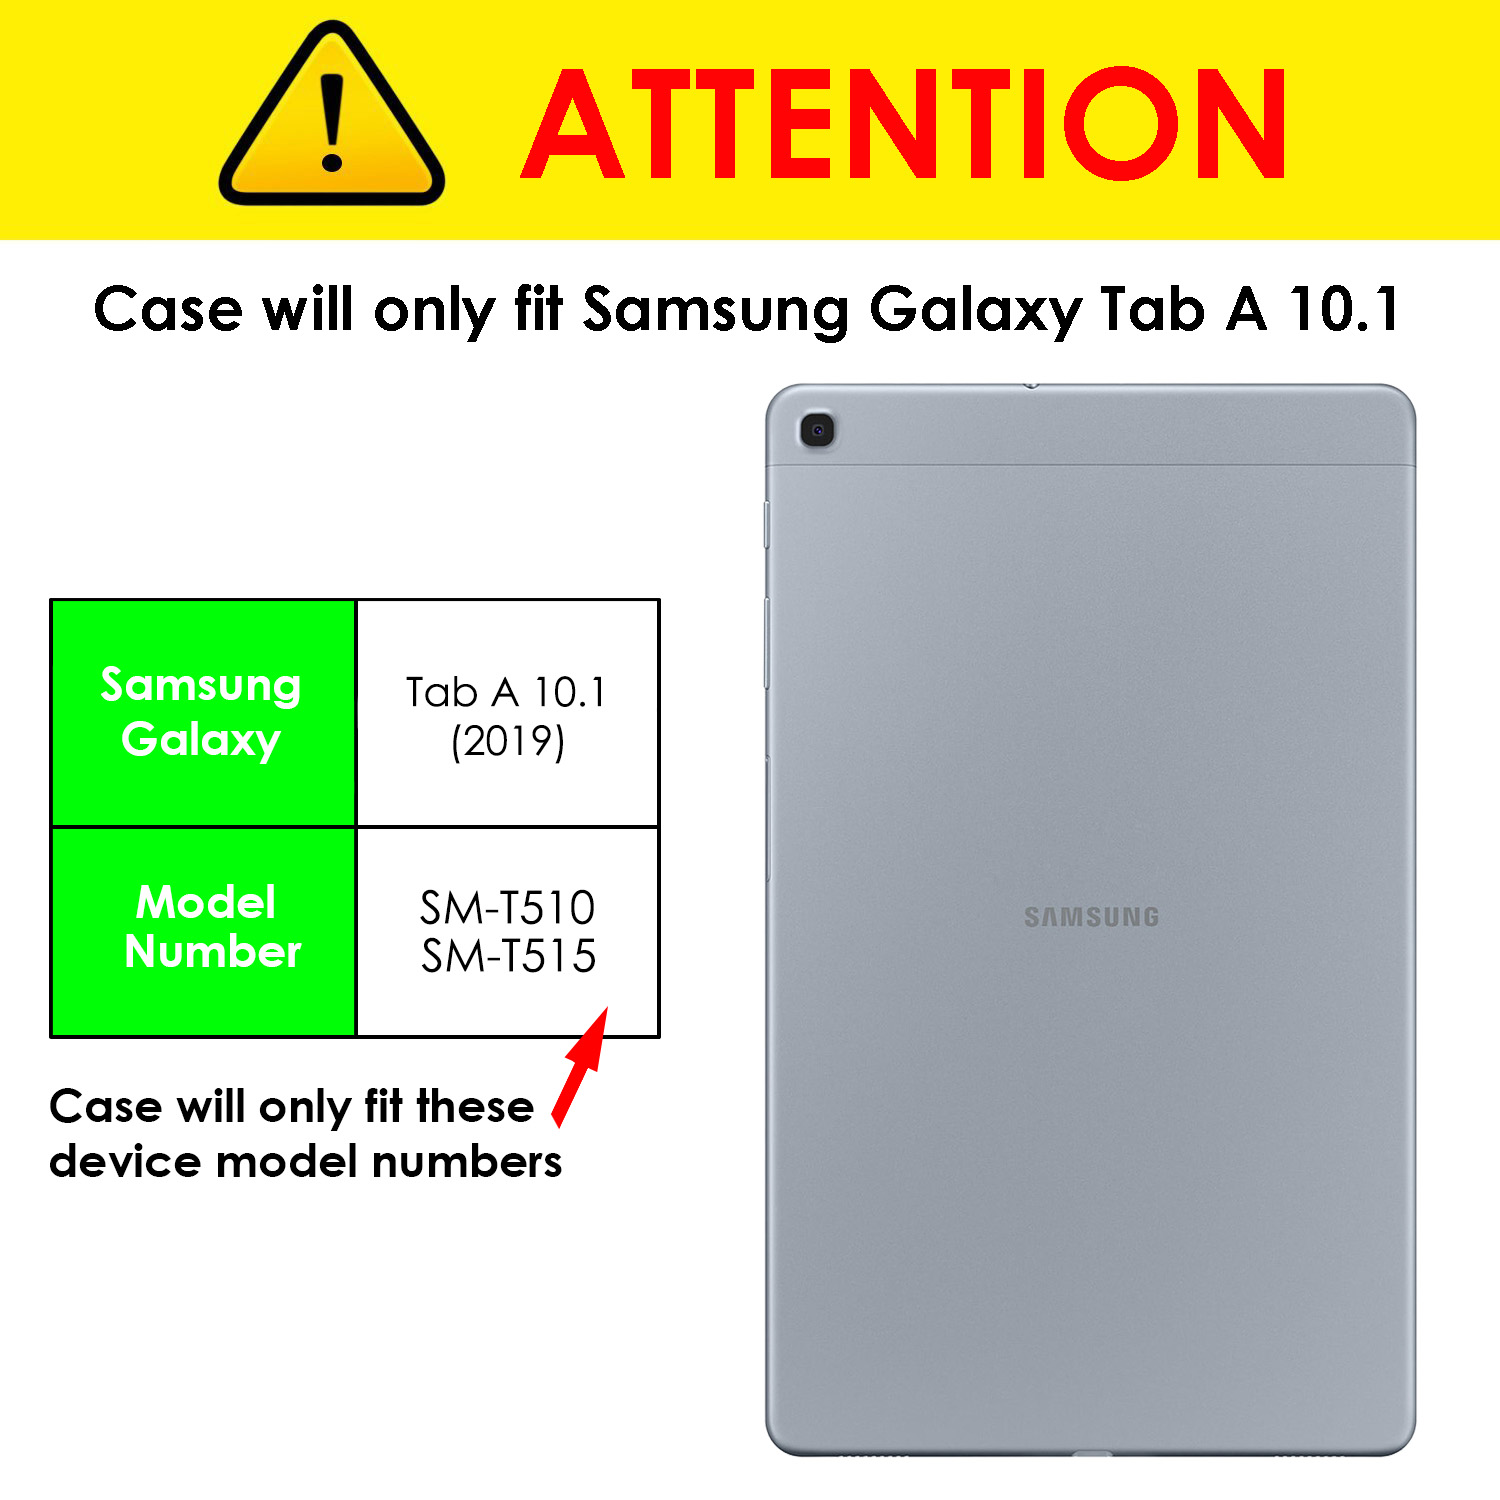 miniature 52 - Samsung Galaxy Tab A 10.1 2019 Étui Magnétique Protection & Support + Stylet